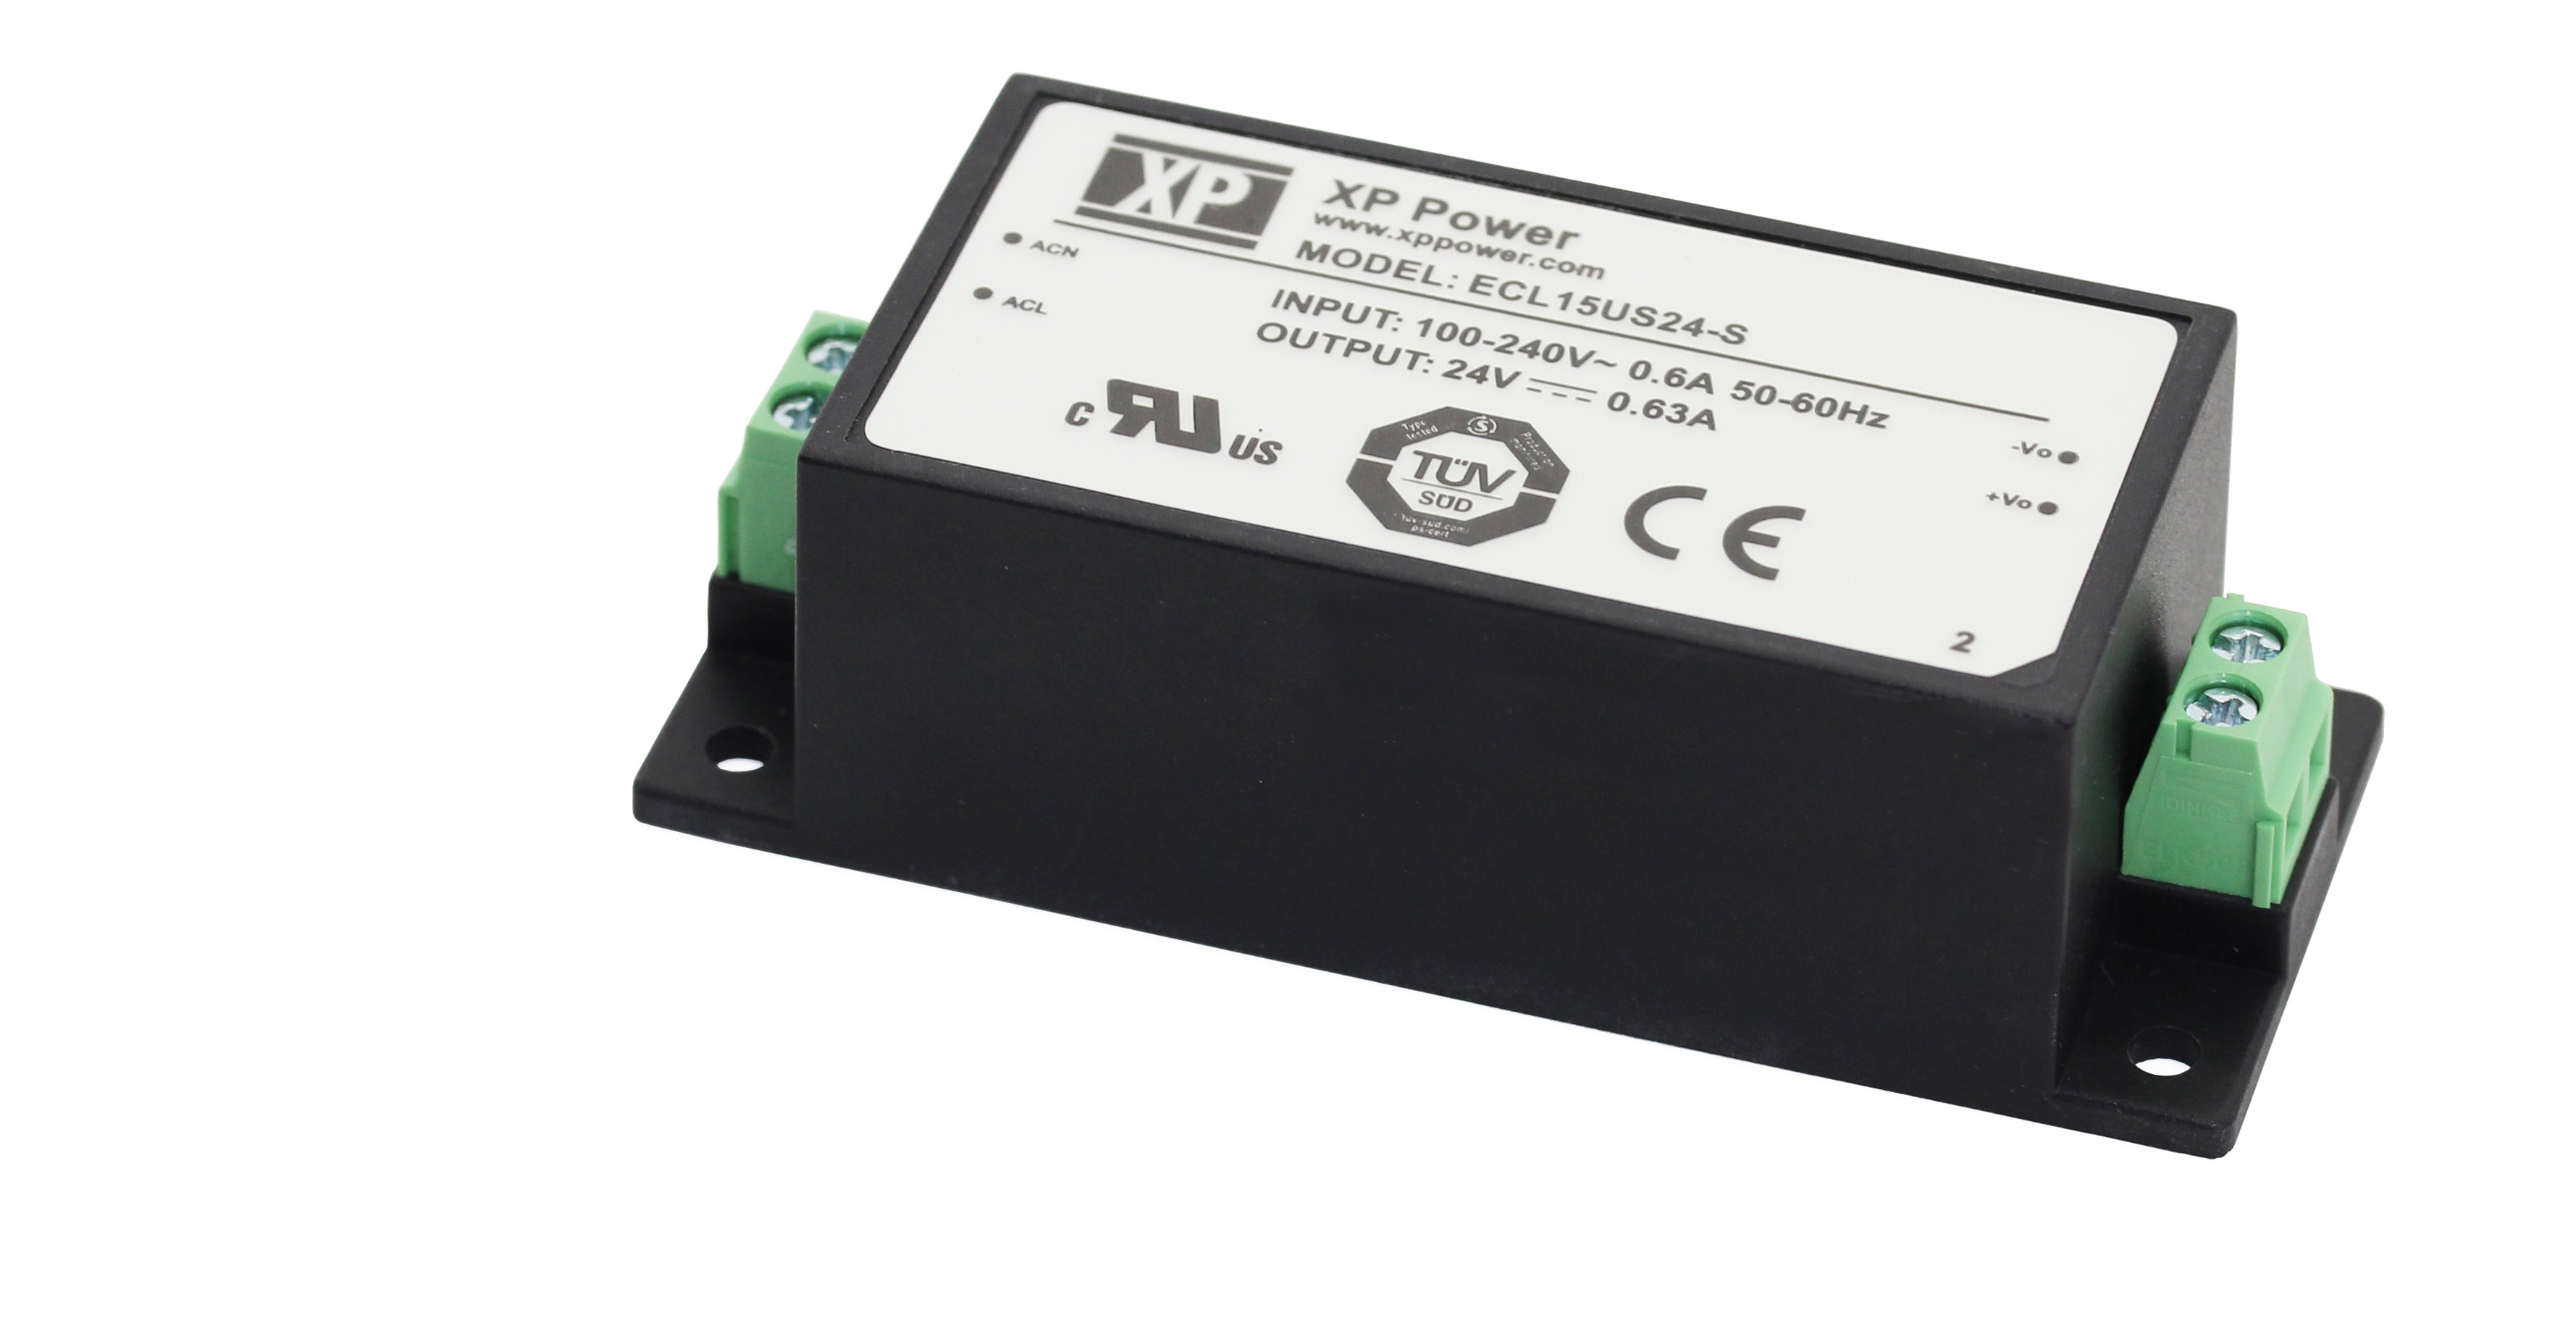 XP Power power supply series ECL15